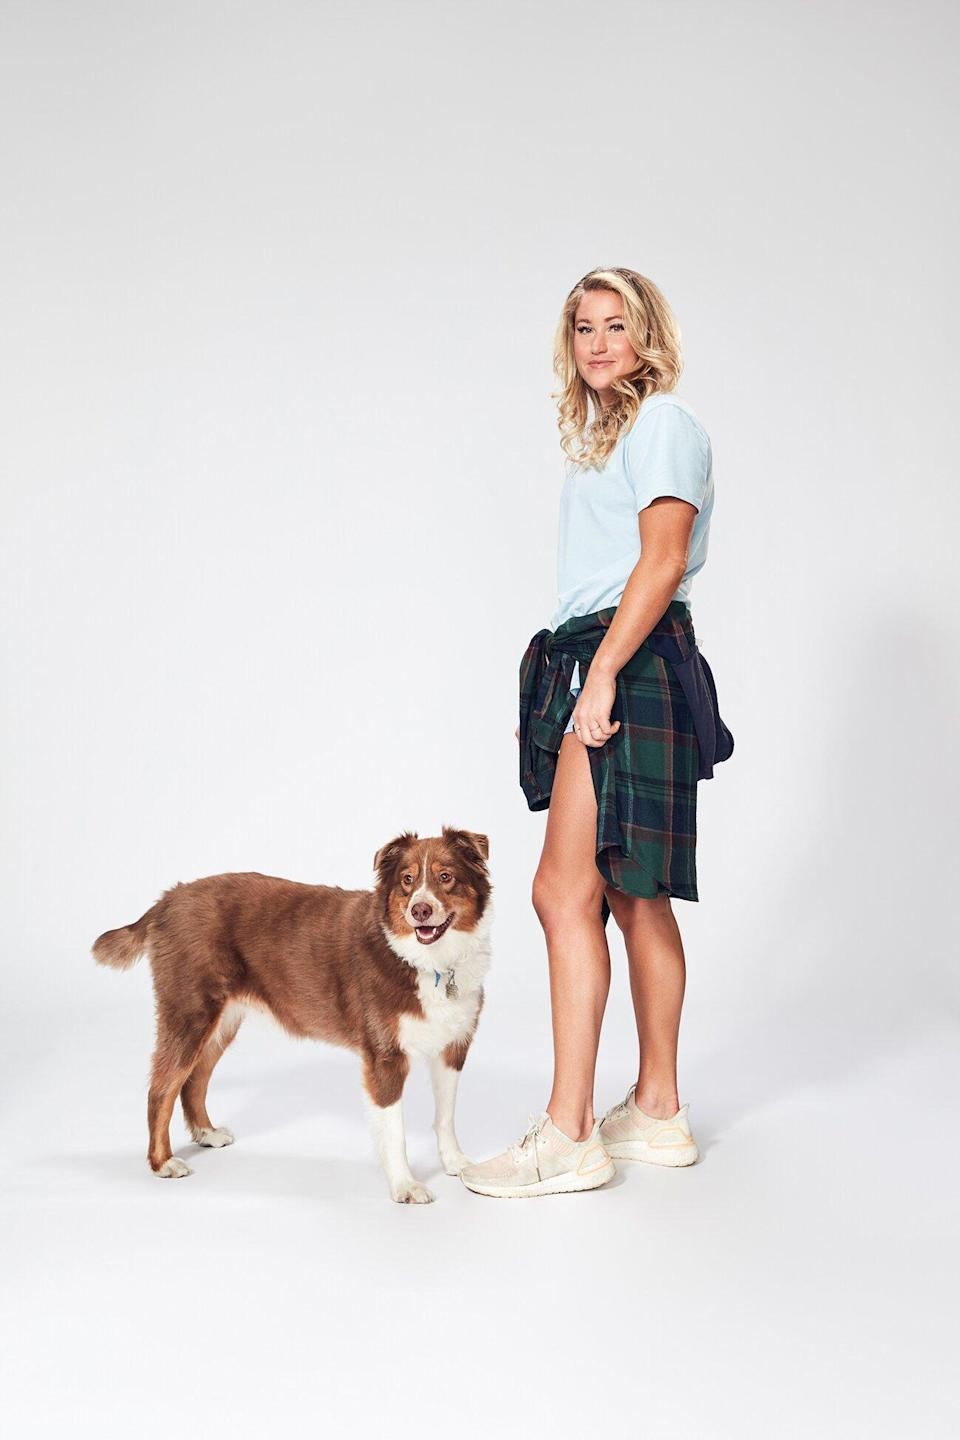 Chelsey and Gryffin from The Pack on Amazon Prime Video